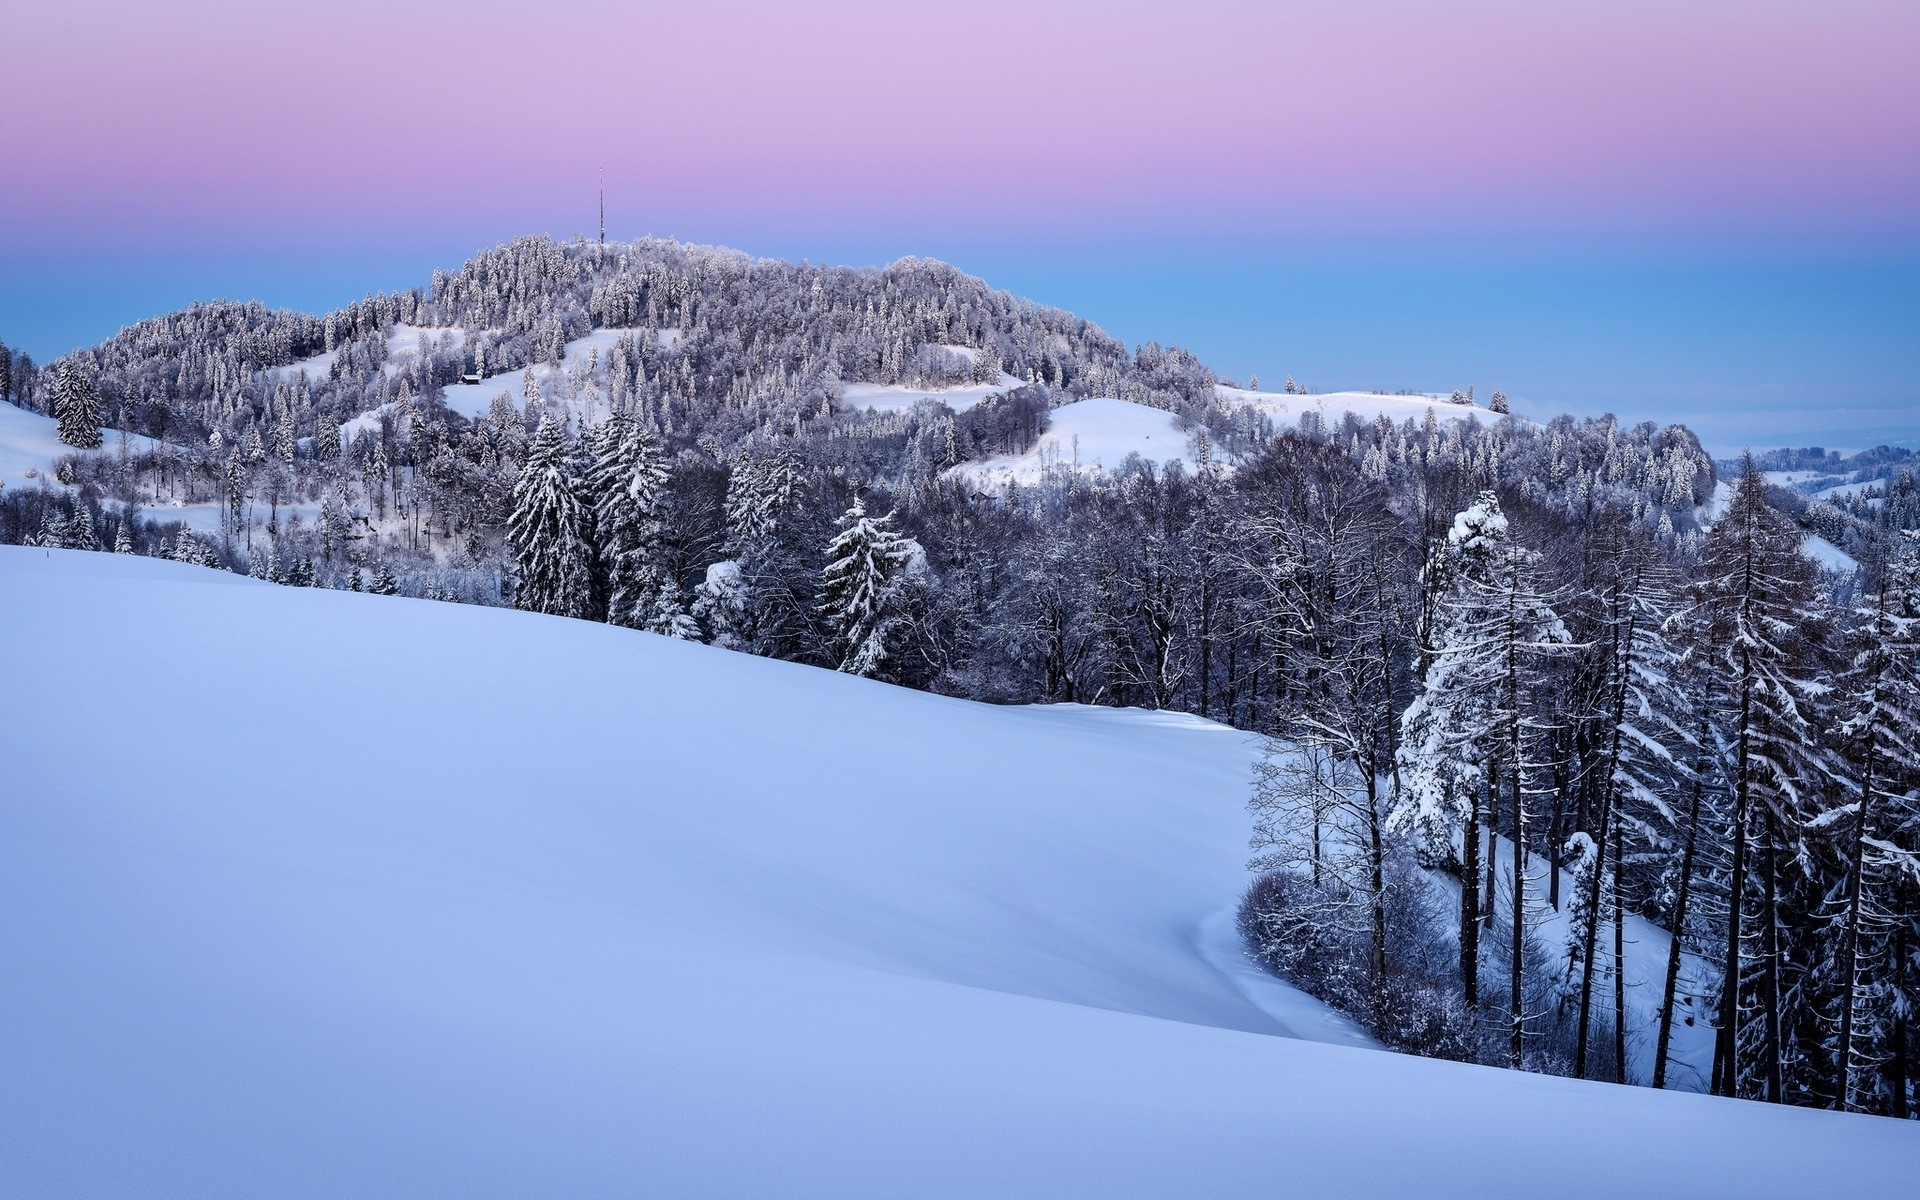 Snowy Hill Forest Pink Sky wallpapers | Snowy Hill Forest Pink Sky ...